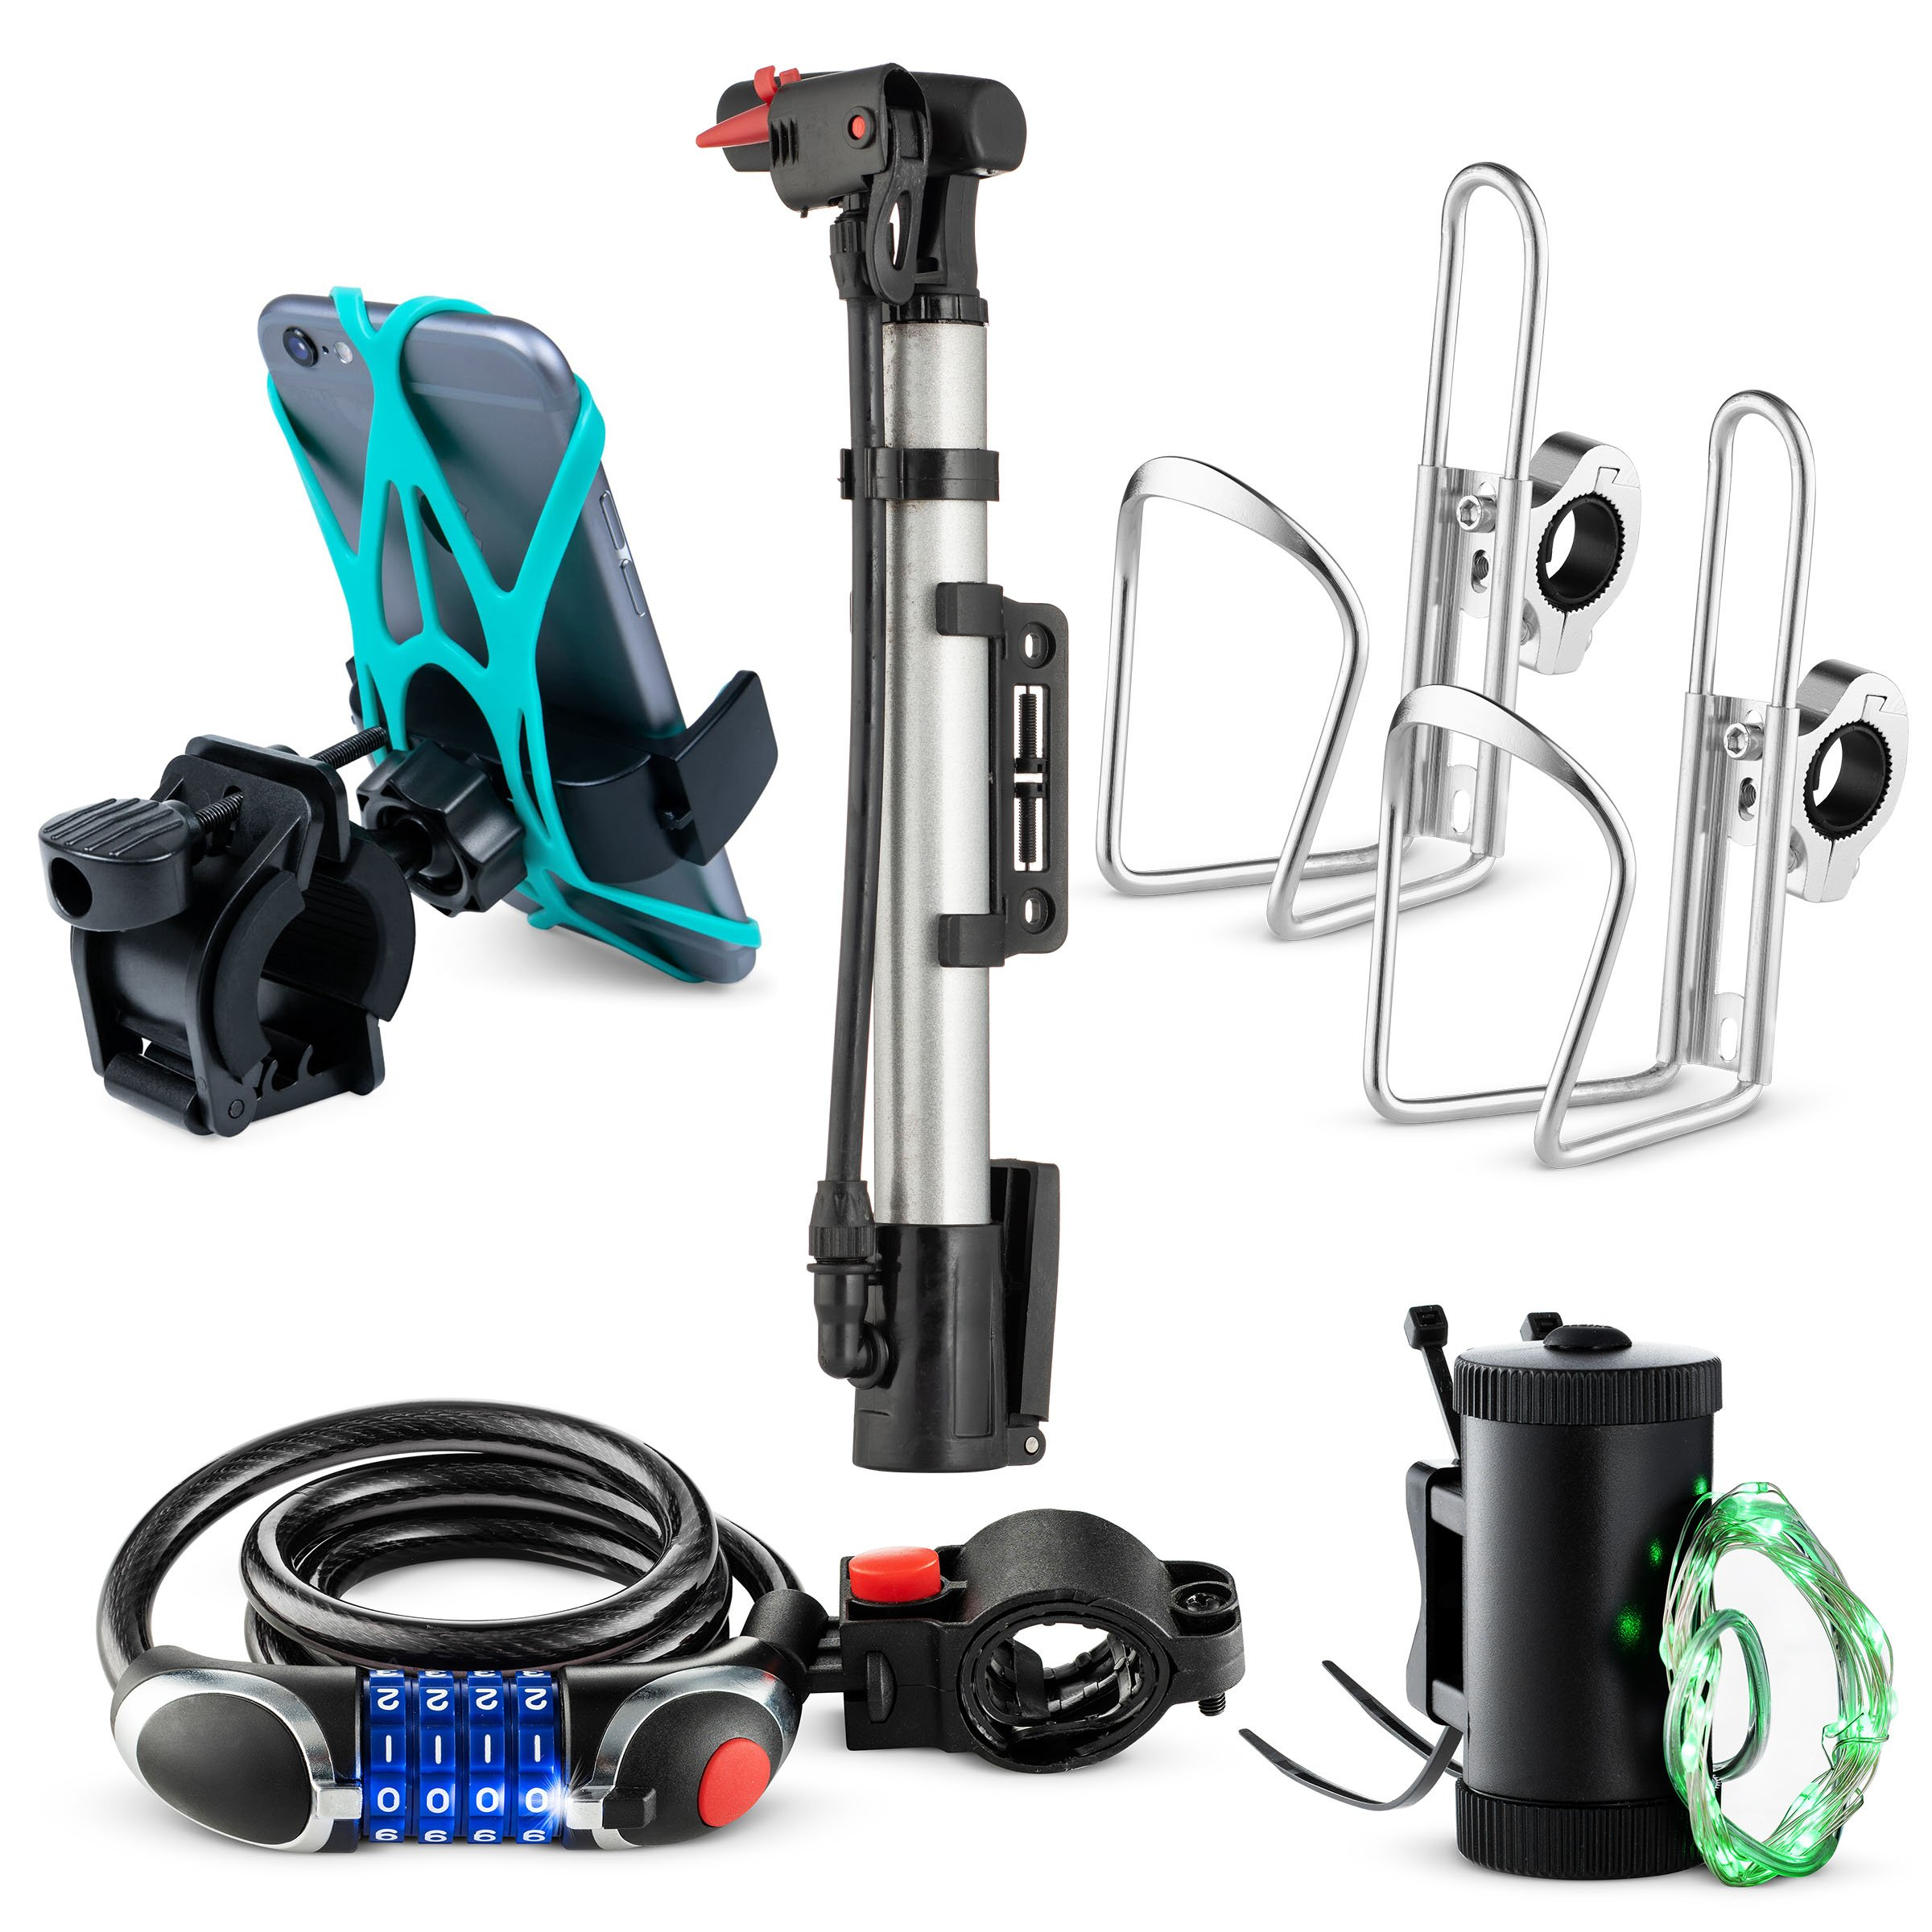 Bikes On Hikes 6 Piece Bike Accessory Kit Green - Includes Hand Bar Cup Holder(2), Led Wheel Light (1), LED Combination Lock(1), Phone Mount(1), Air Pump(1)- Perfect All in One Set for Bike/MTB Riding